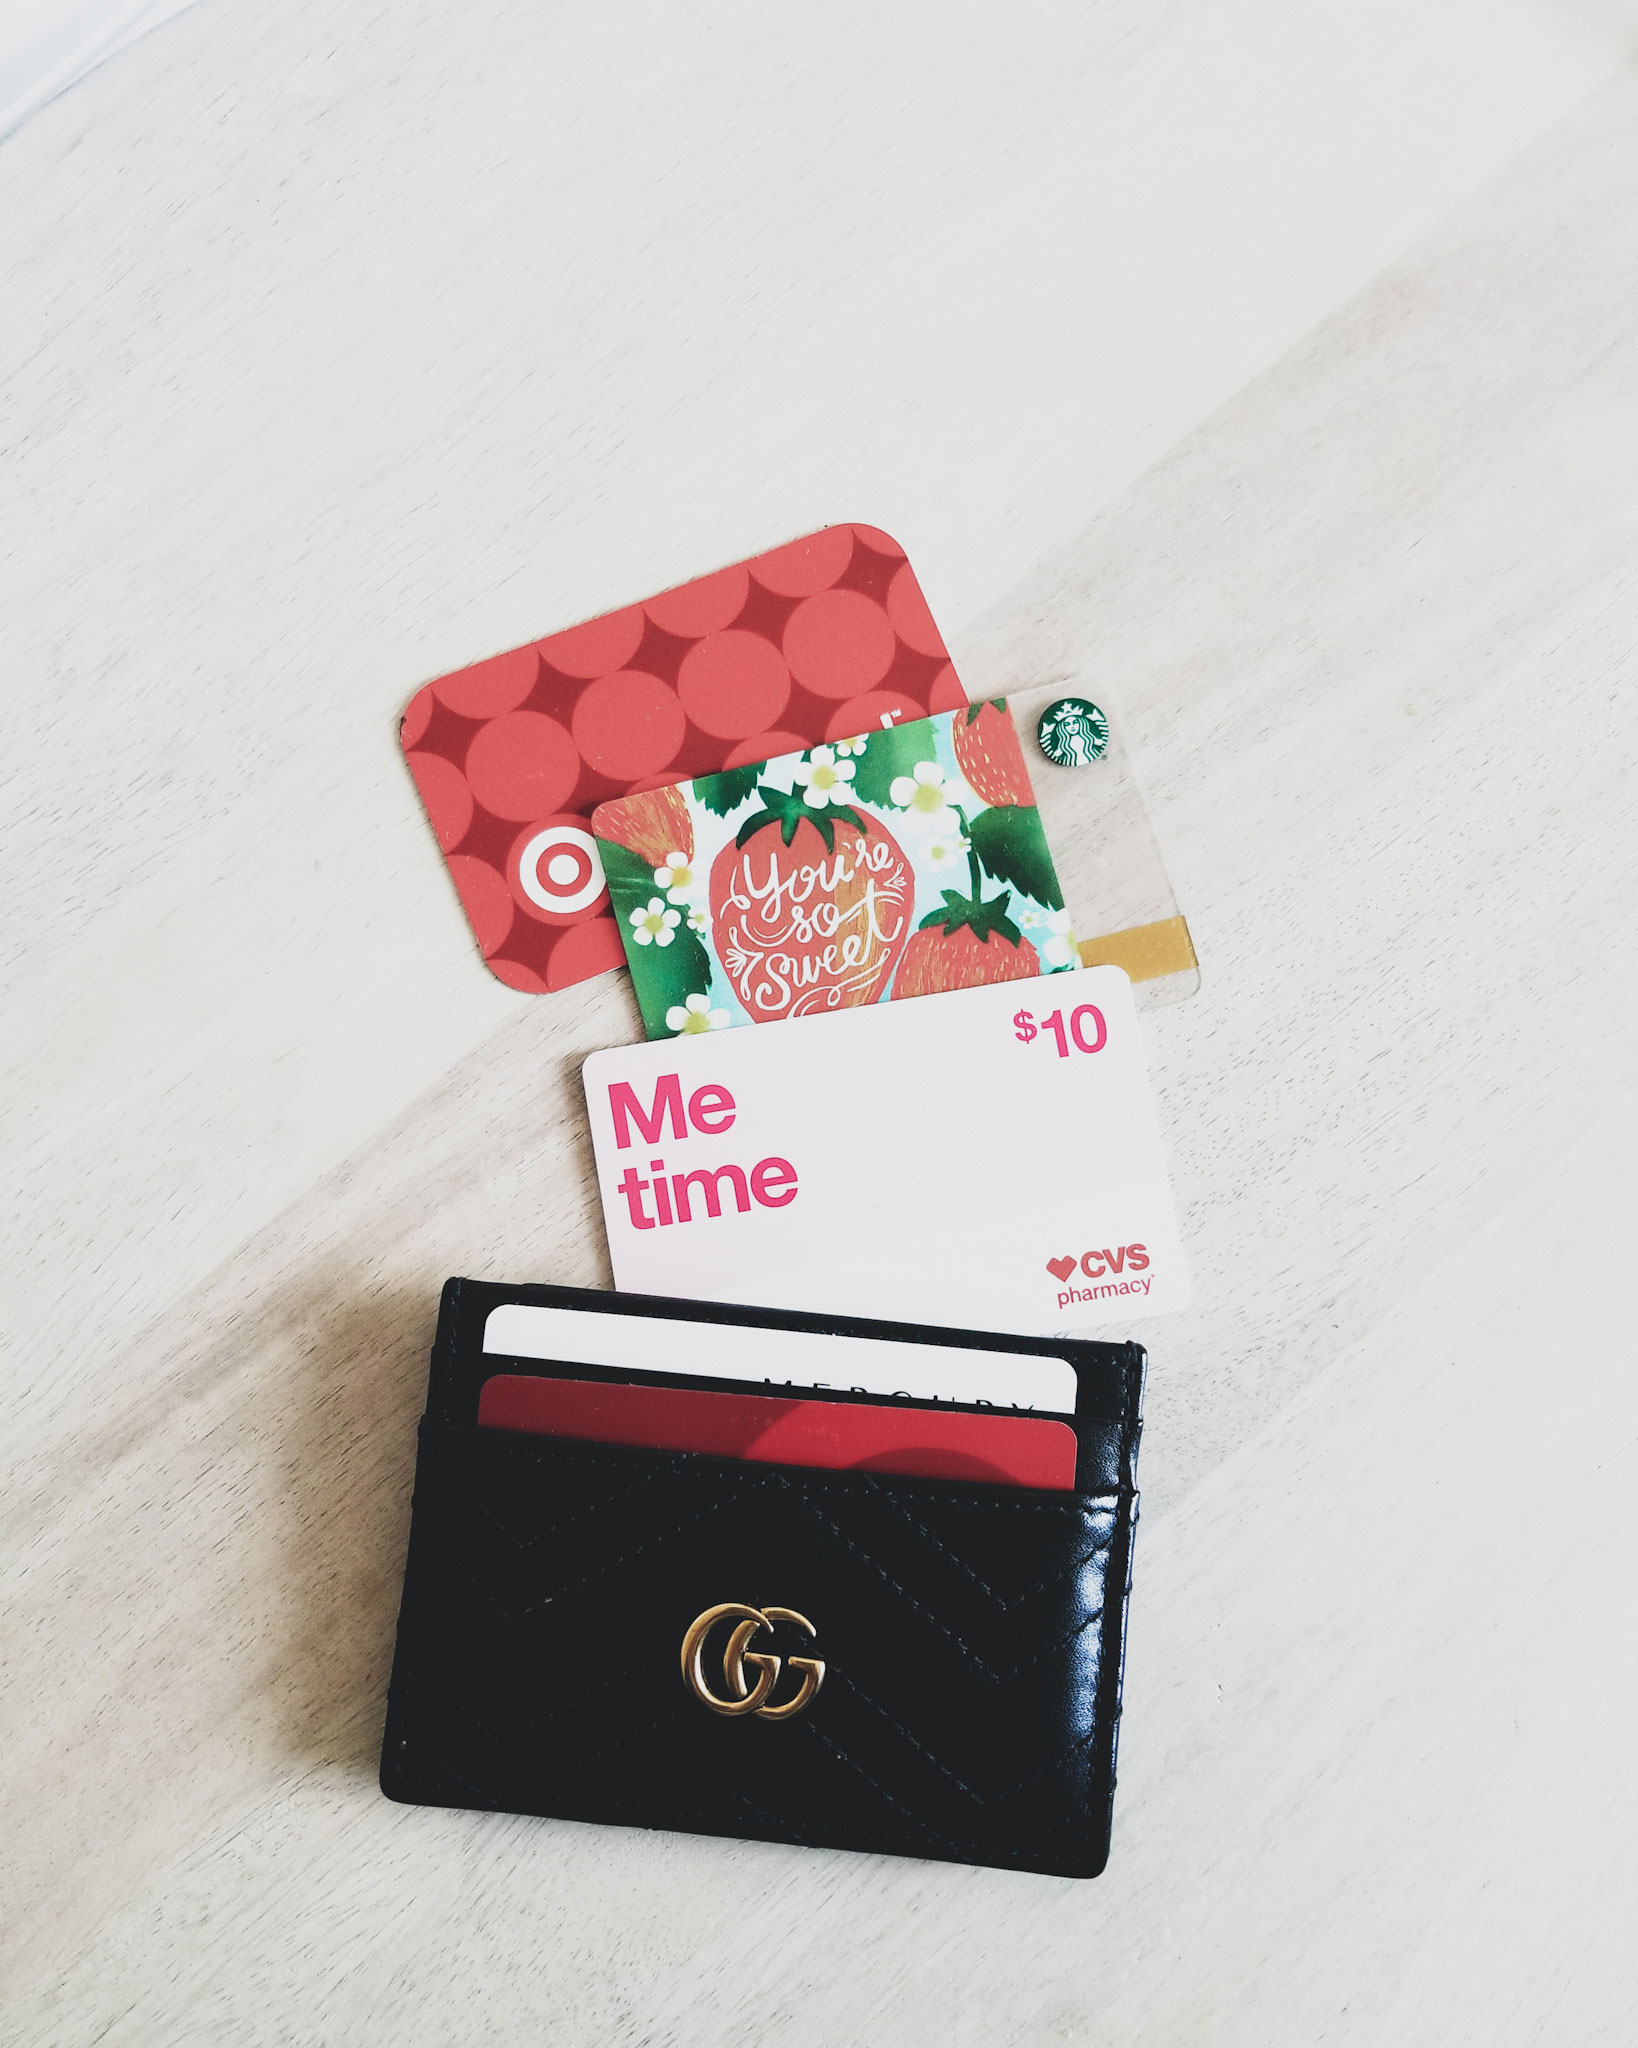 7-legit-way-to-earn-free-gift-cards